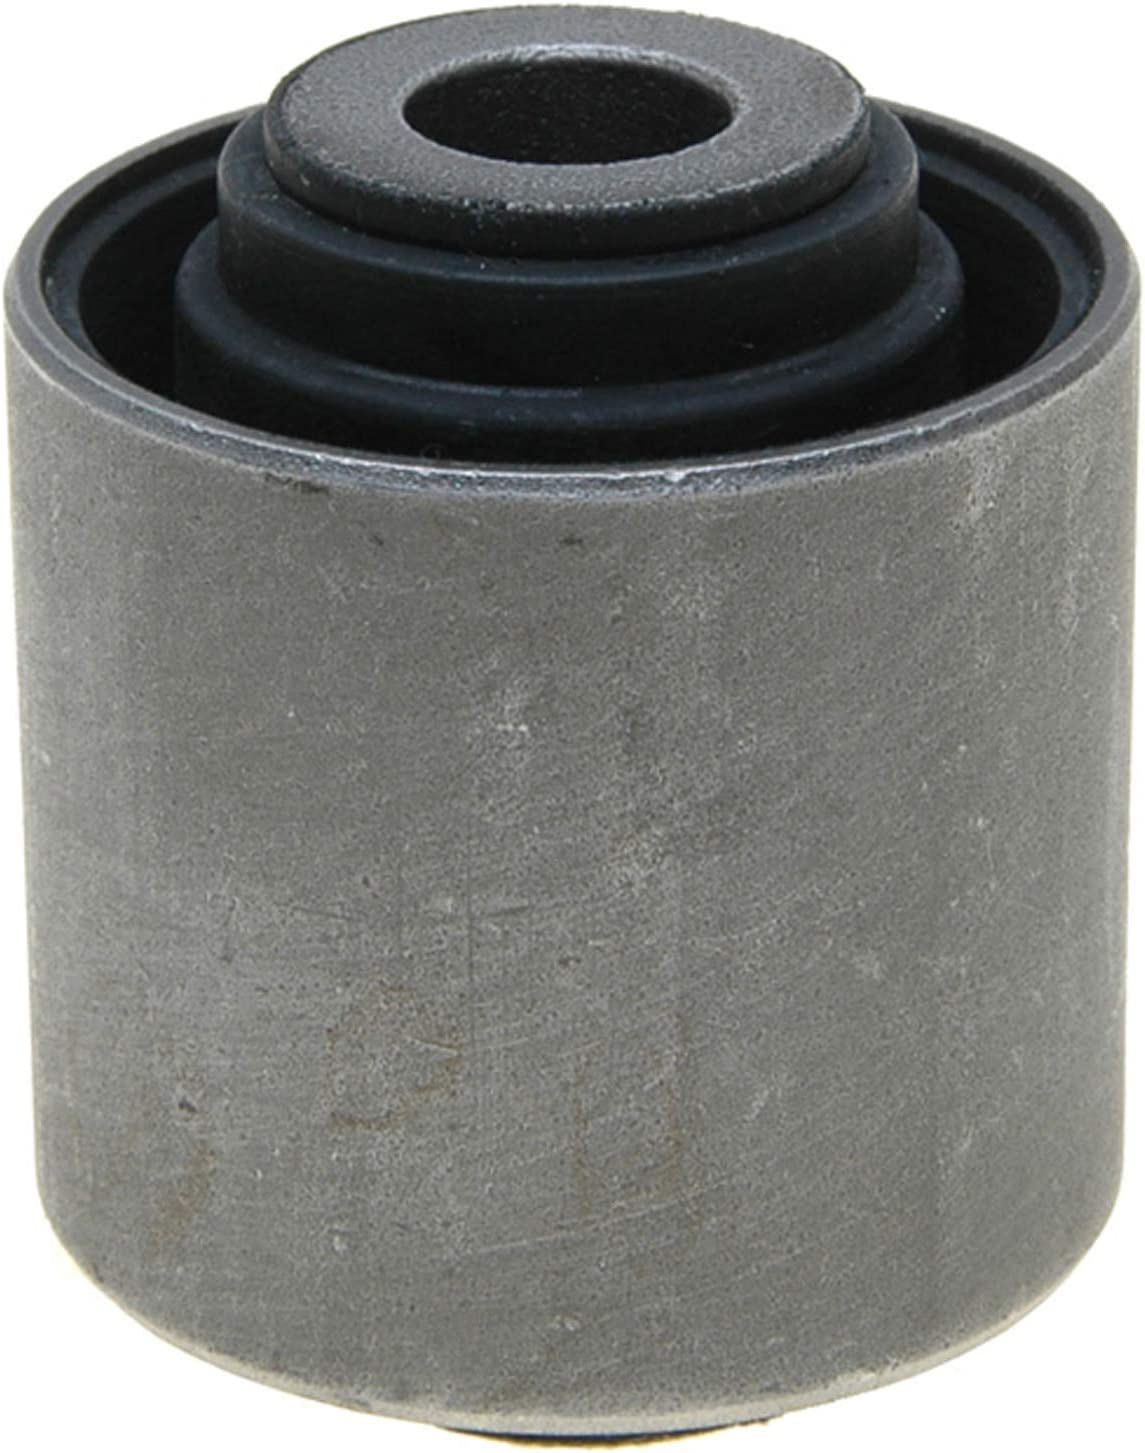 McQuay-Norris FB930 Trailing Bushing Link New item Limited Special Price